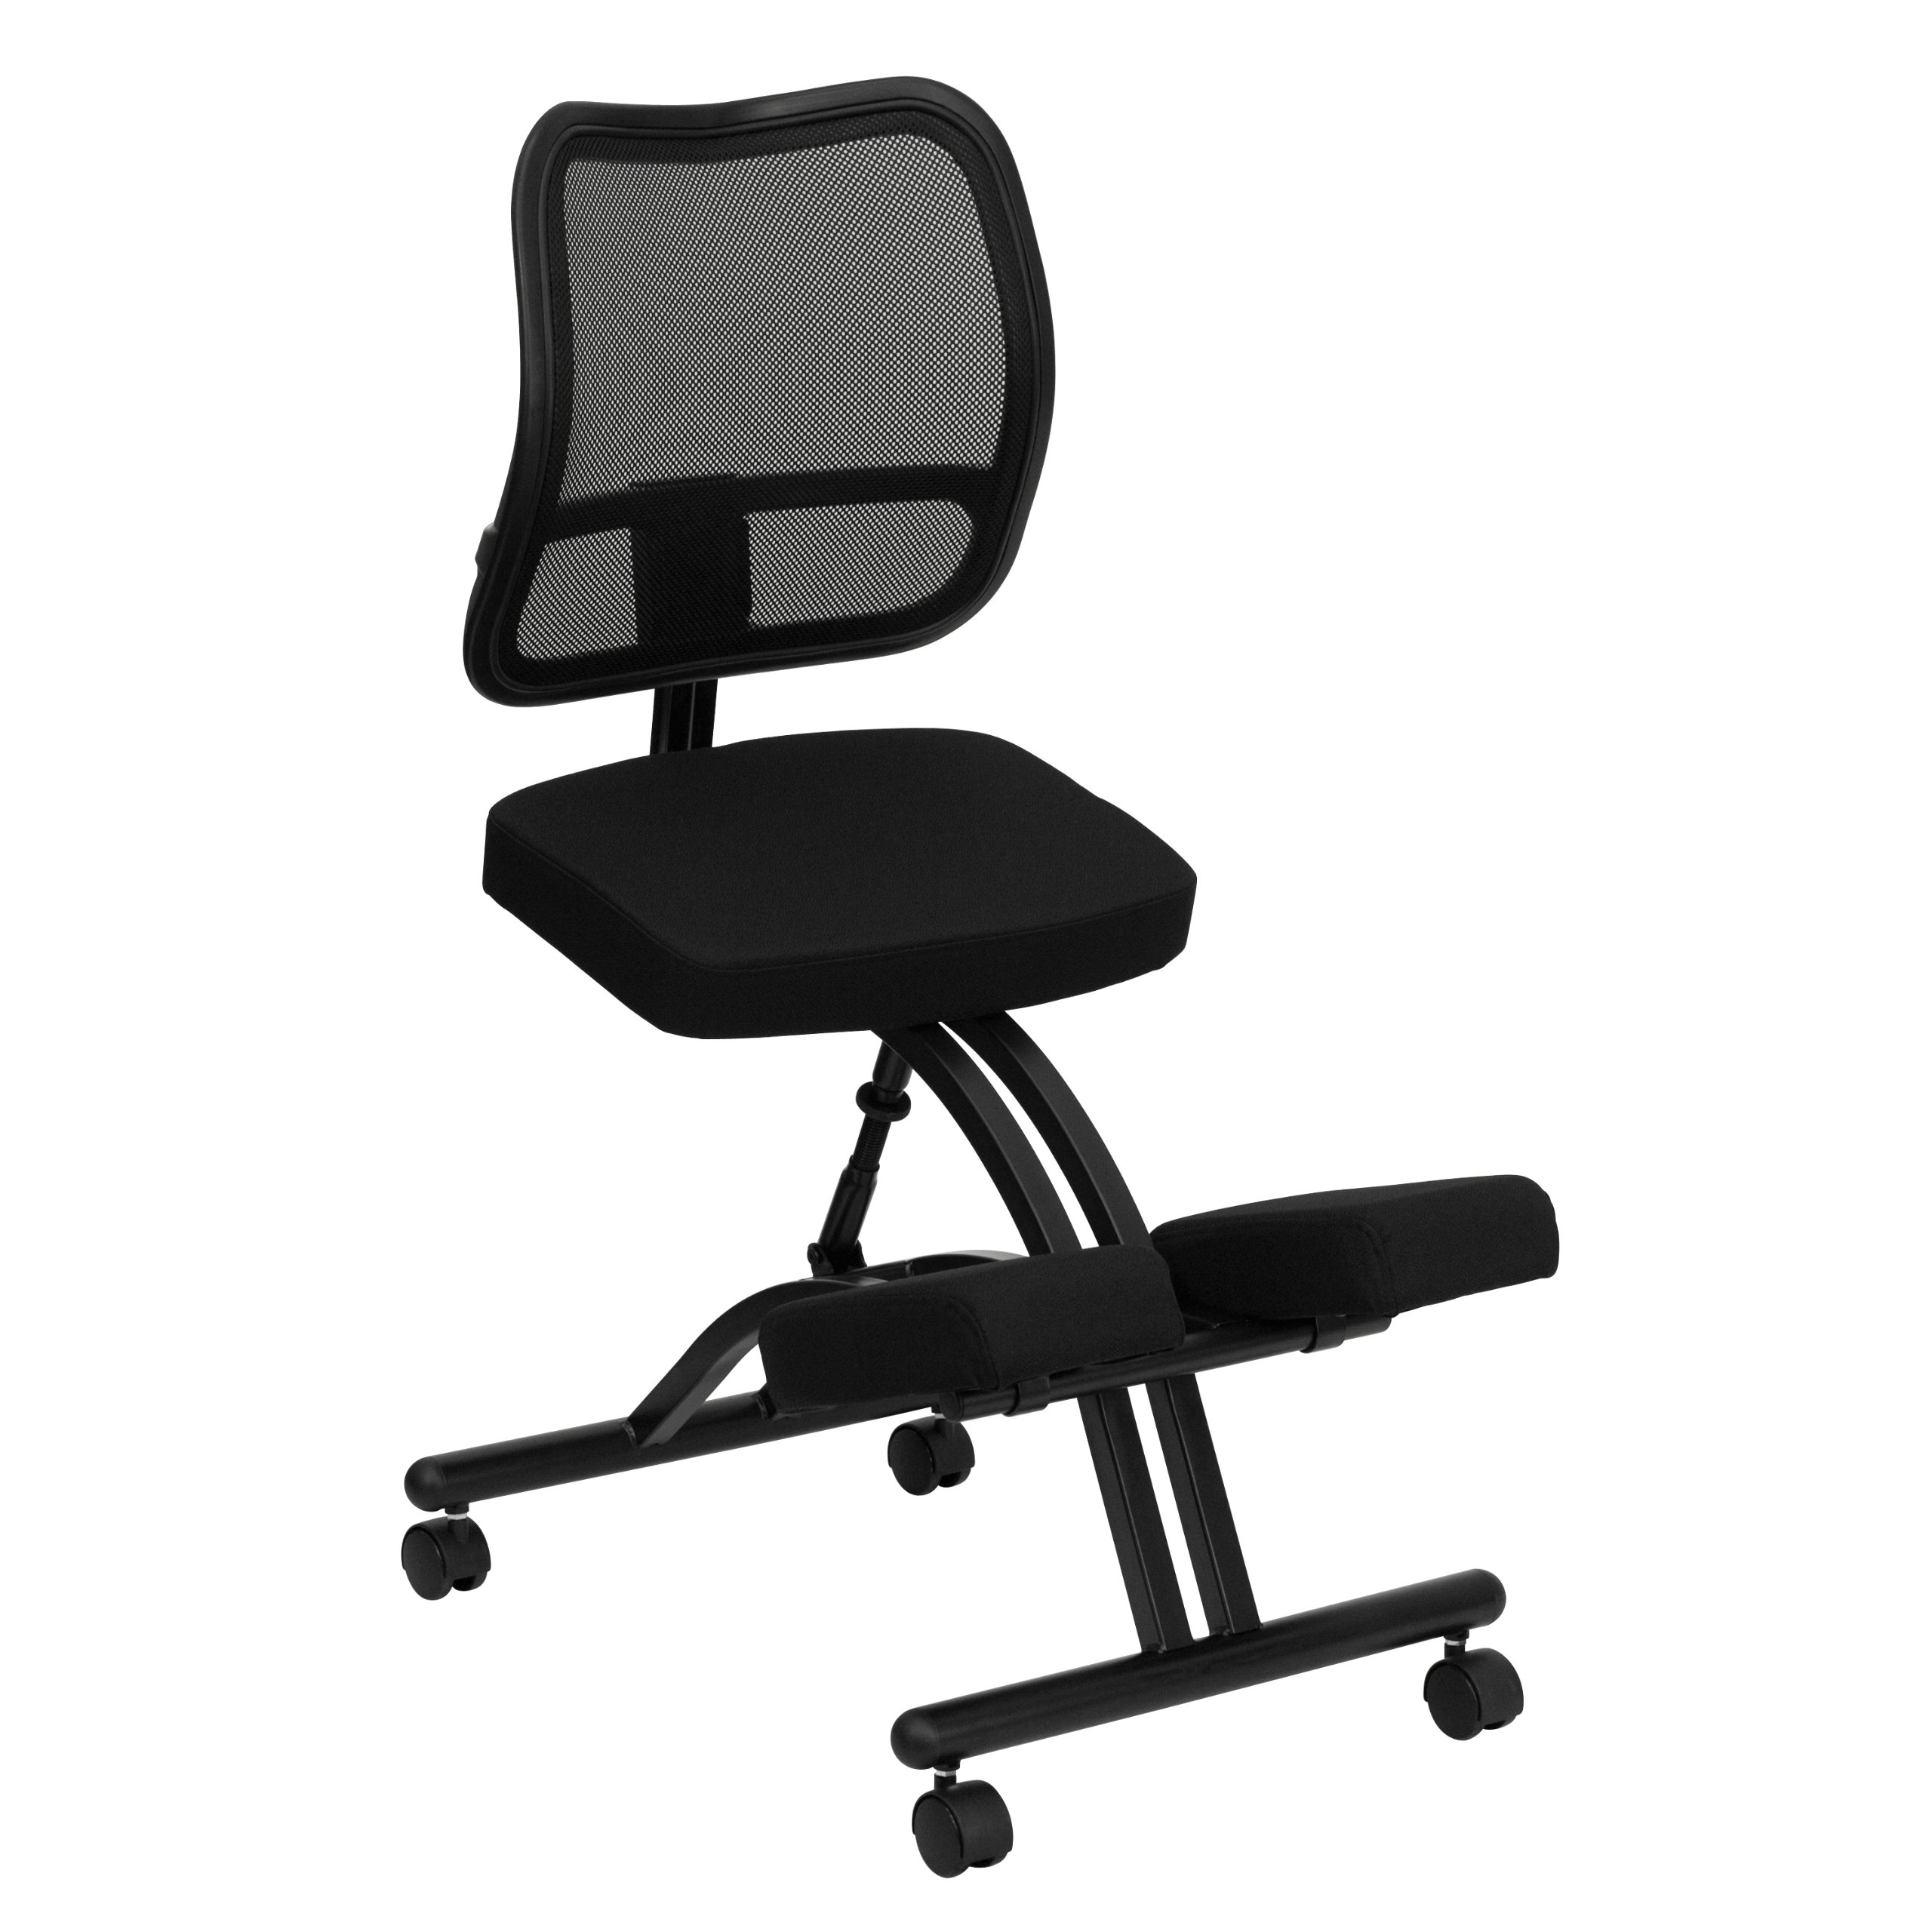 MFO Mobile Ergonomic Kneeling Chair with Black Curved Mesh Back and Fabric Seat by My Friendly Office